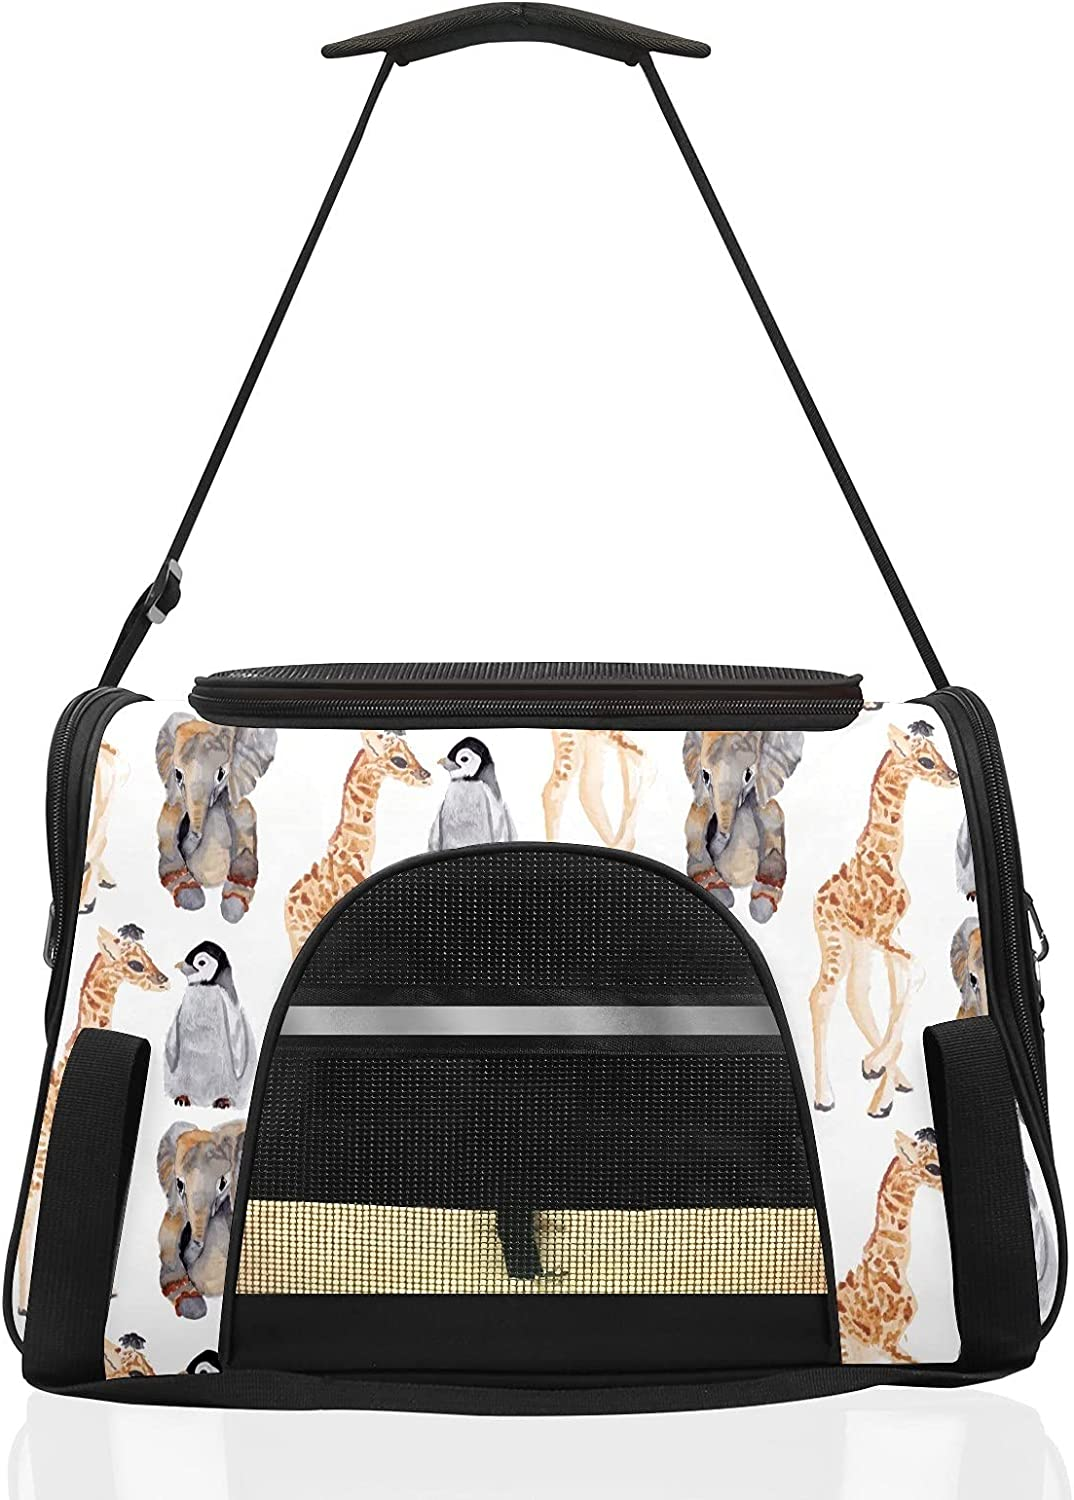 Pet Carriers for OFFicial Cat Year-end gift Giraffe Tra Soft-Sided Airline Approved